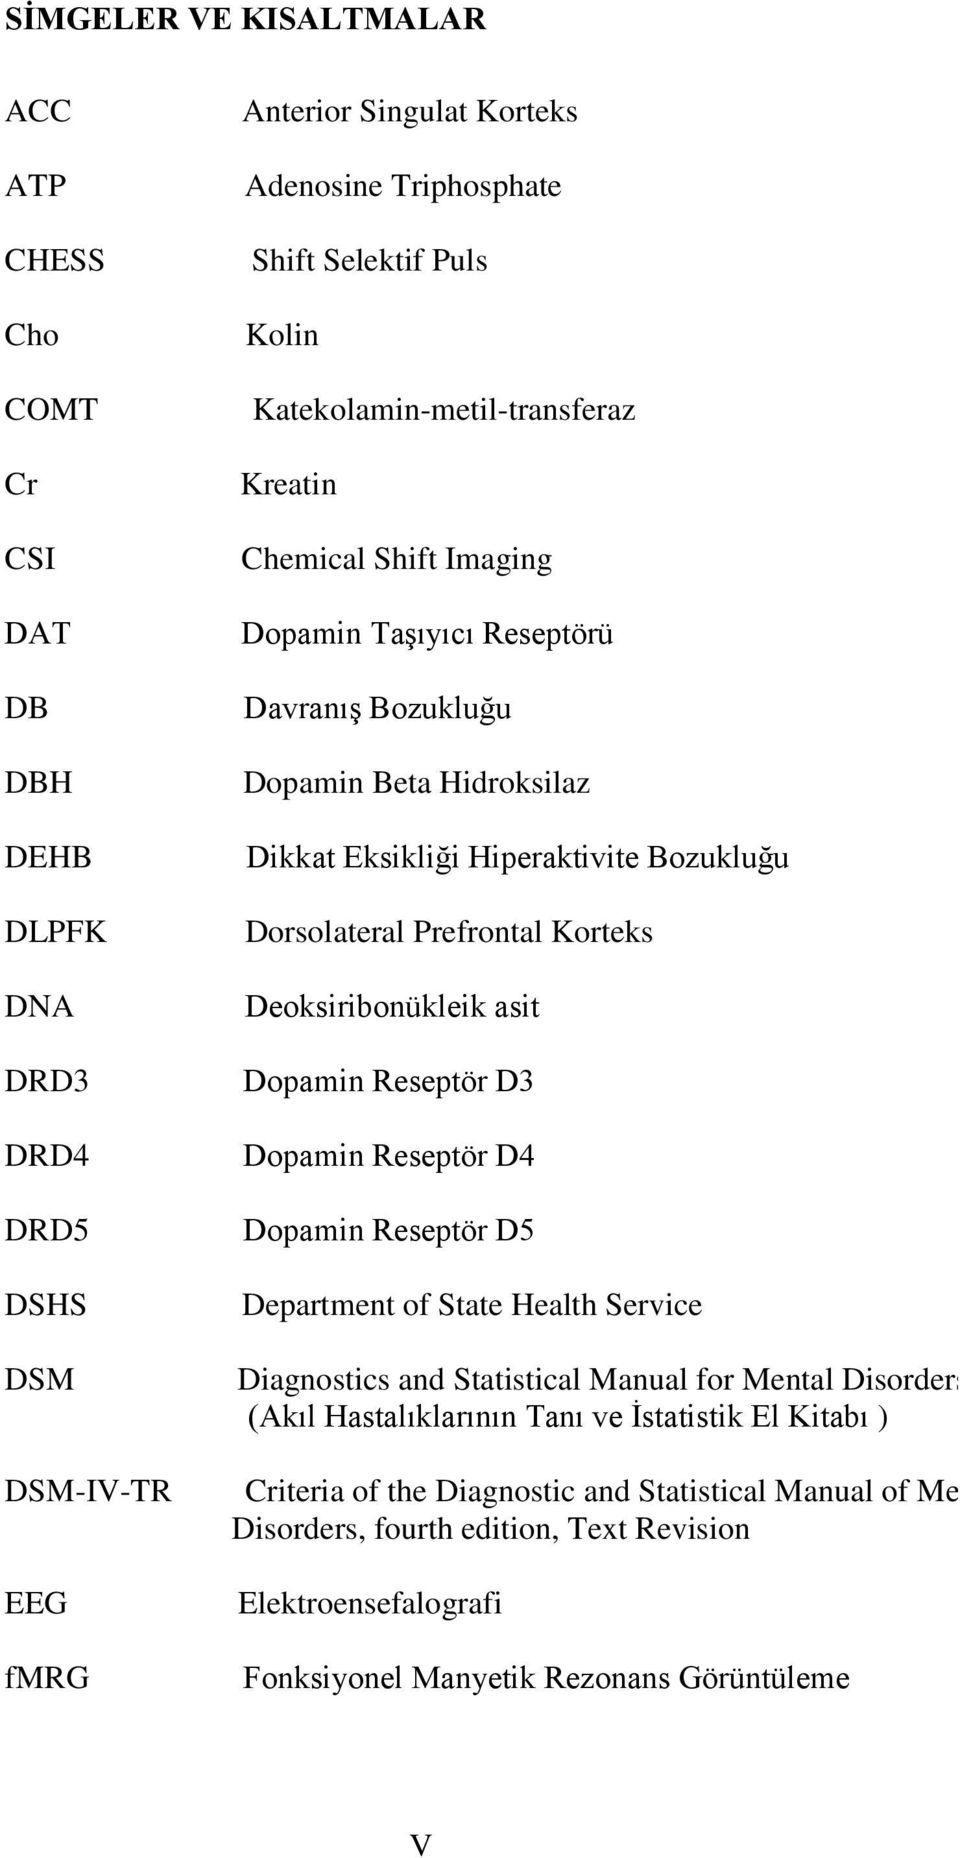 Korteks Deoksiribonükleik asit Dopamin Reseptör D3 Dopamin Reseptör D4 Dopamin Reseptör D5 Department of State Health Service Diagnostics and Statistical Manual for Mental Disorders (Akıl